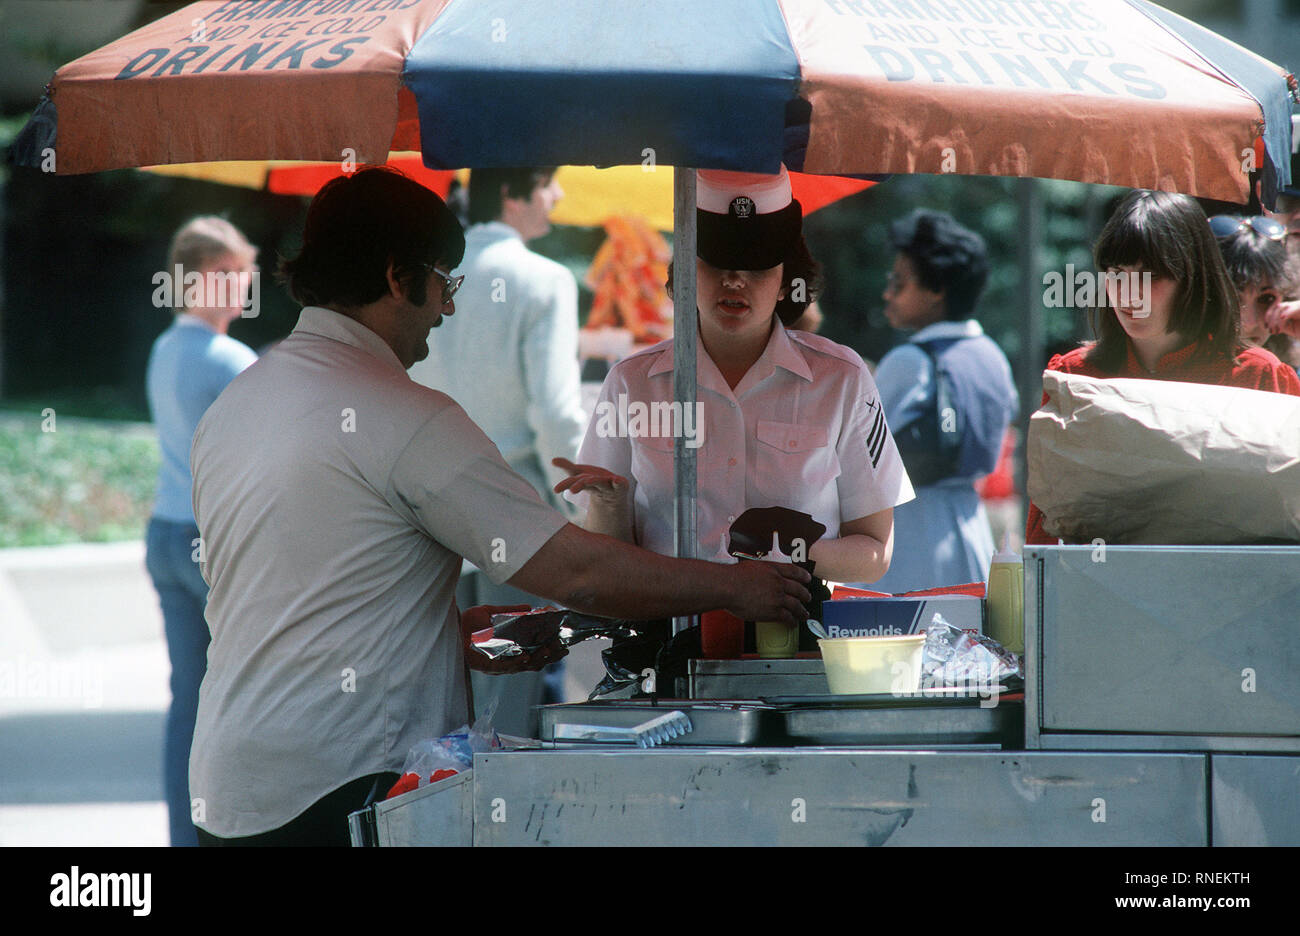 1982 - A Navy woman takes her lunch break at a hot dog stand in Crystal City. - Stock Image